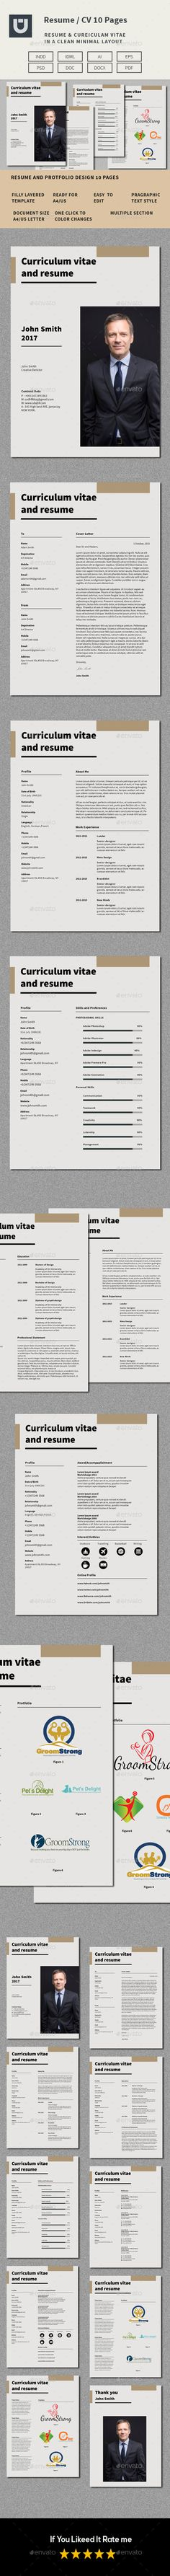 24 Best Canva Remix Templates Images On Pinterest Models Cv Battery Cell Diagram Editable Powerpoint Template Resume Clean And Sharp Cover Letter You Can Show Your